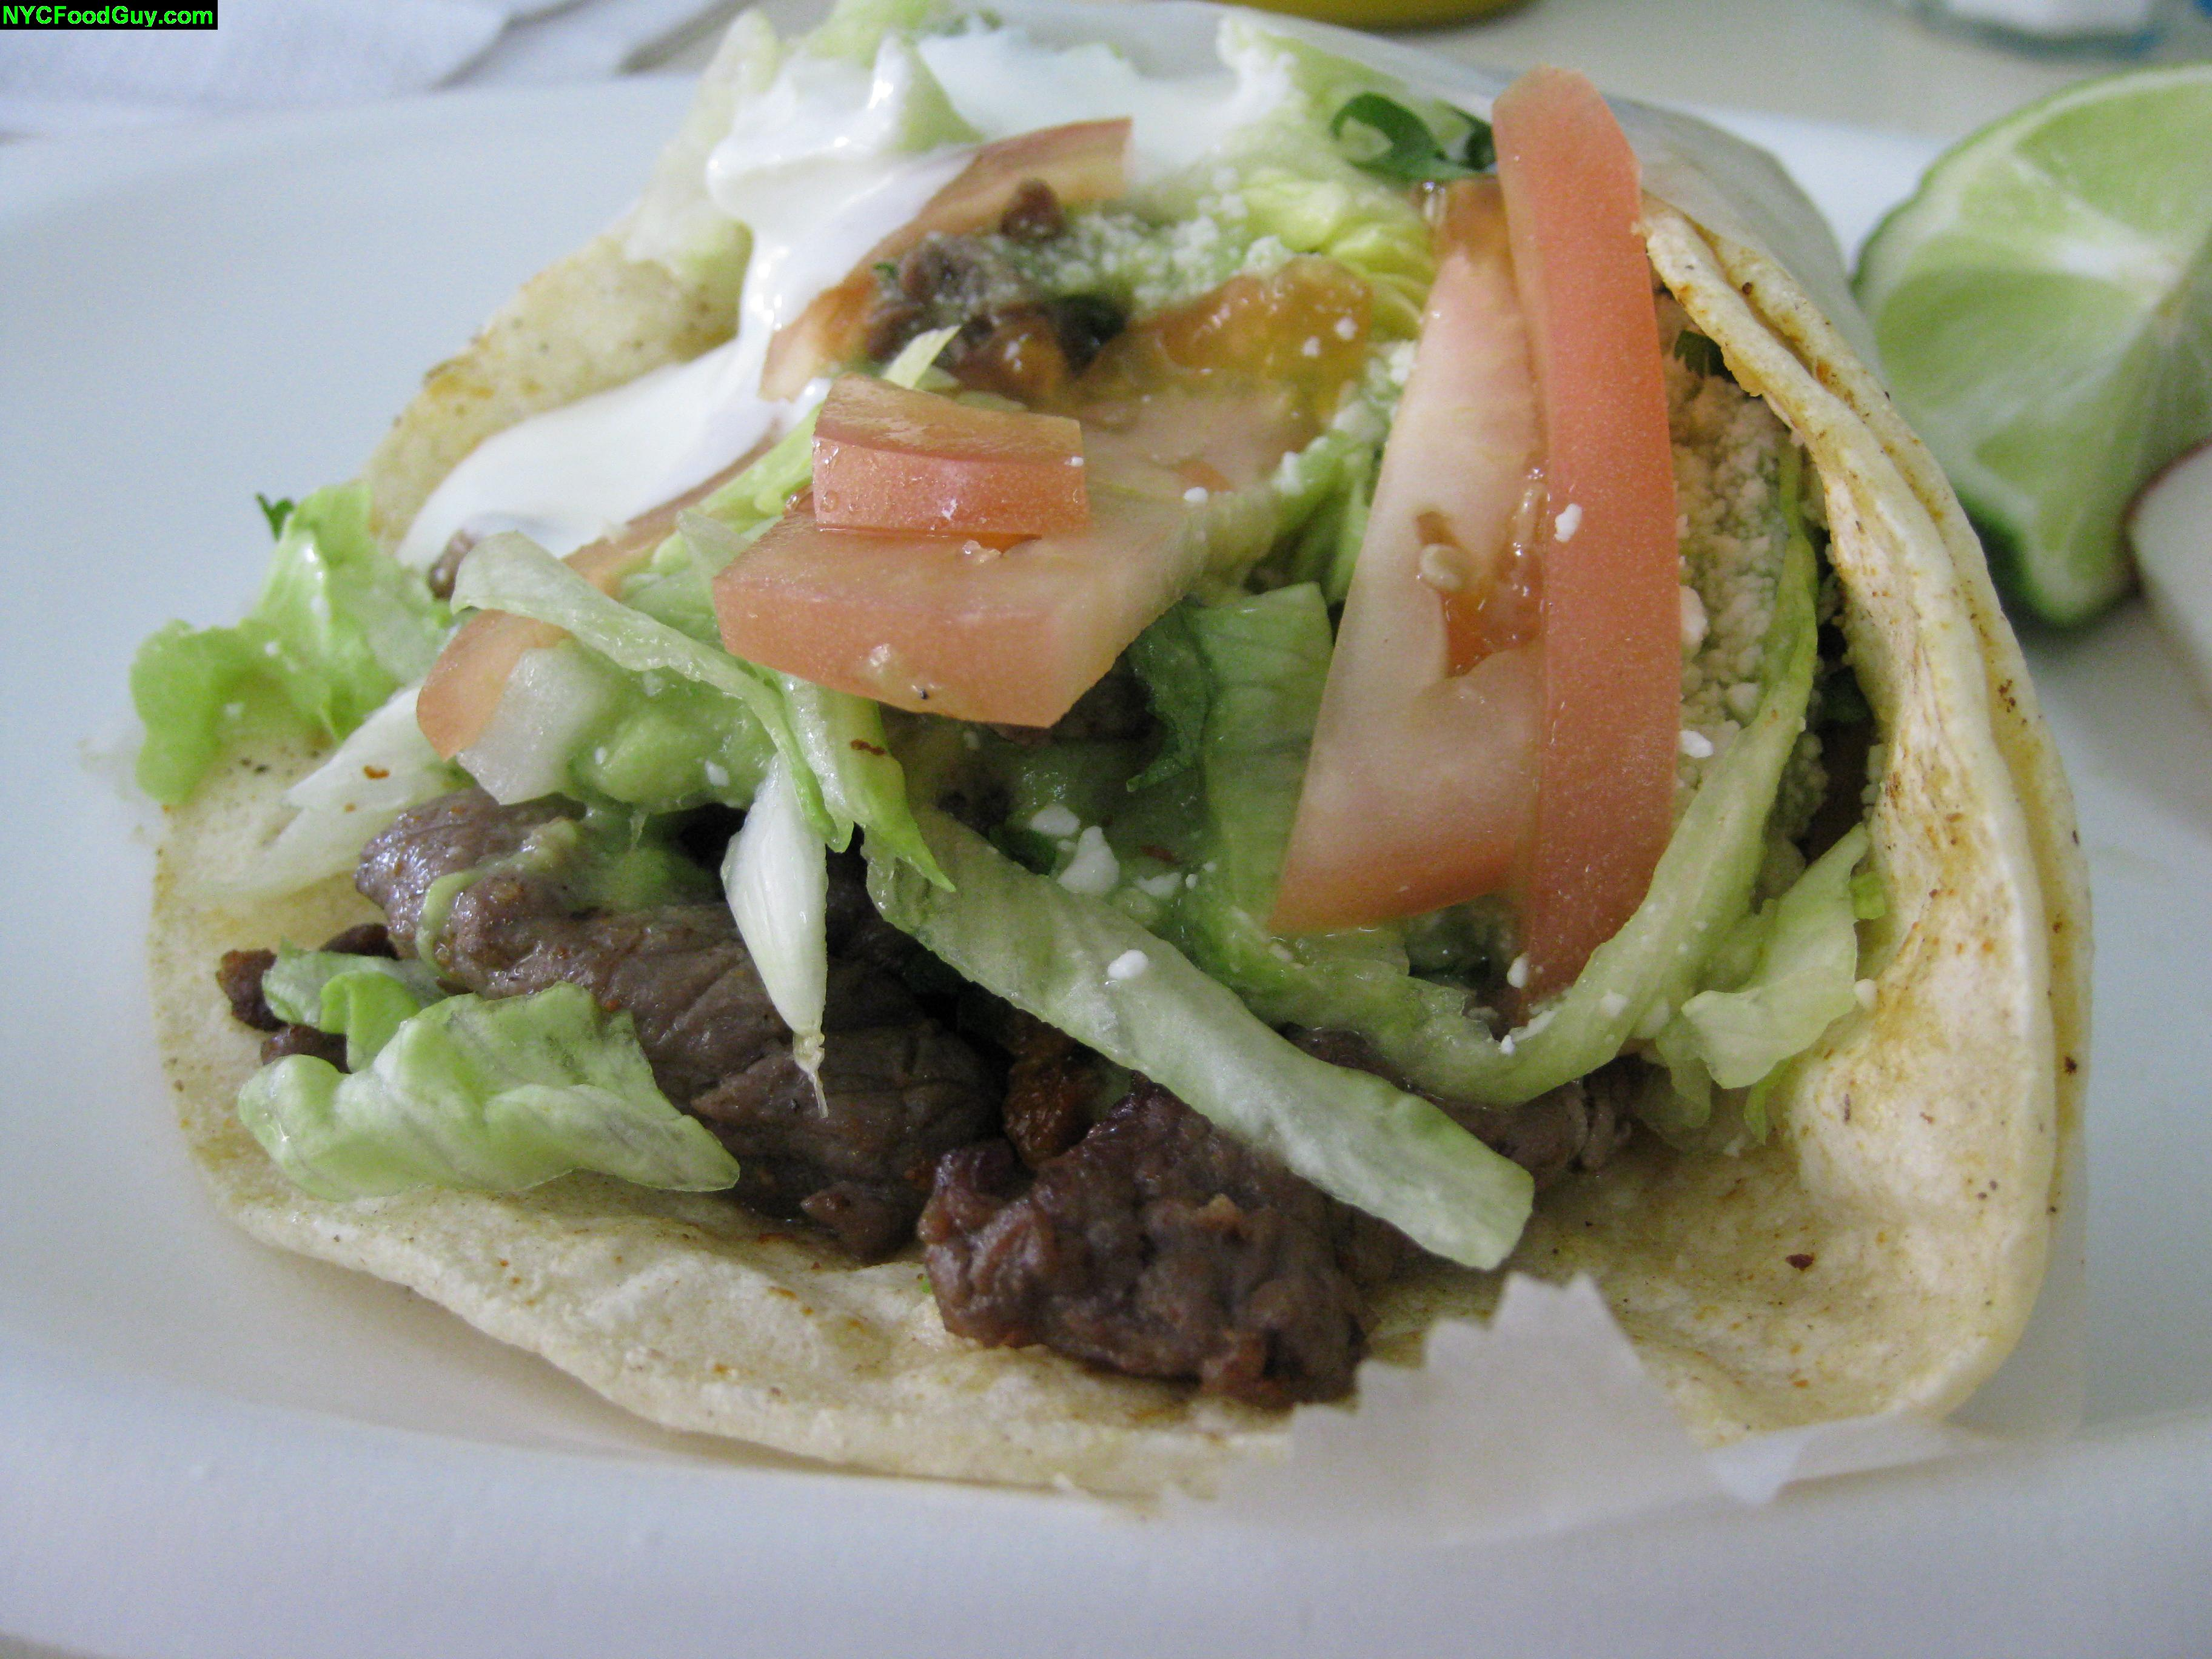 The carne asada taco's combo of queso crema and fresca provided a flavor trip of its own.